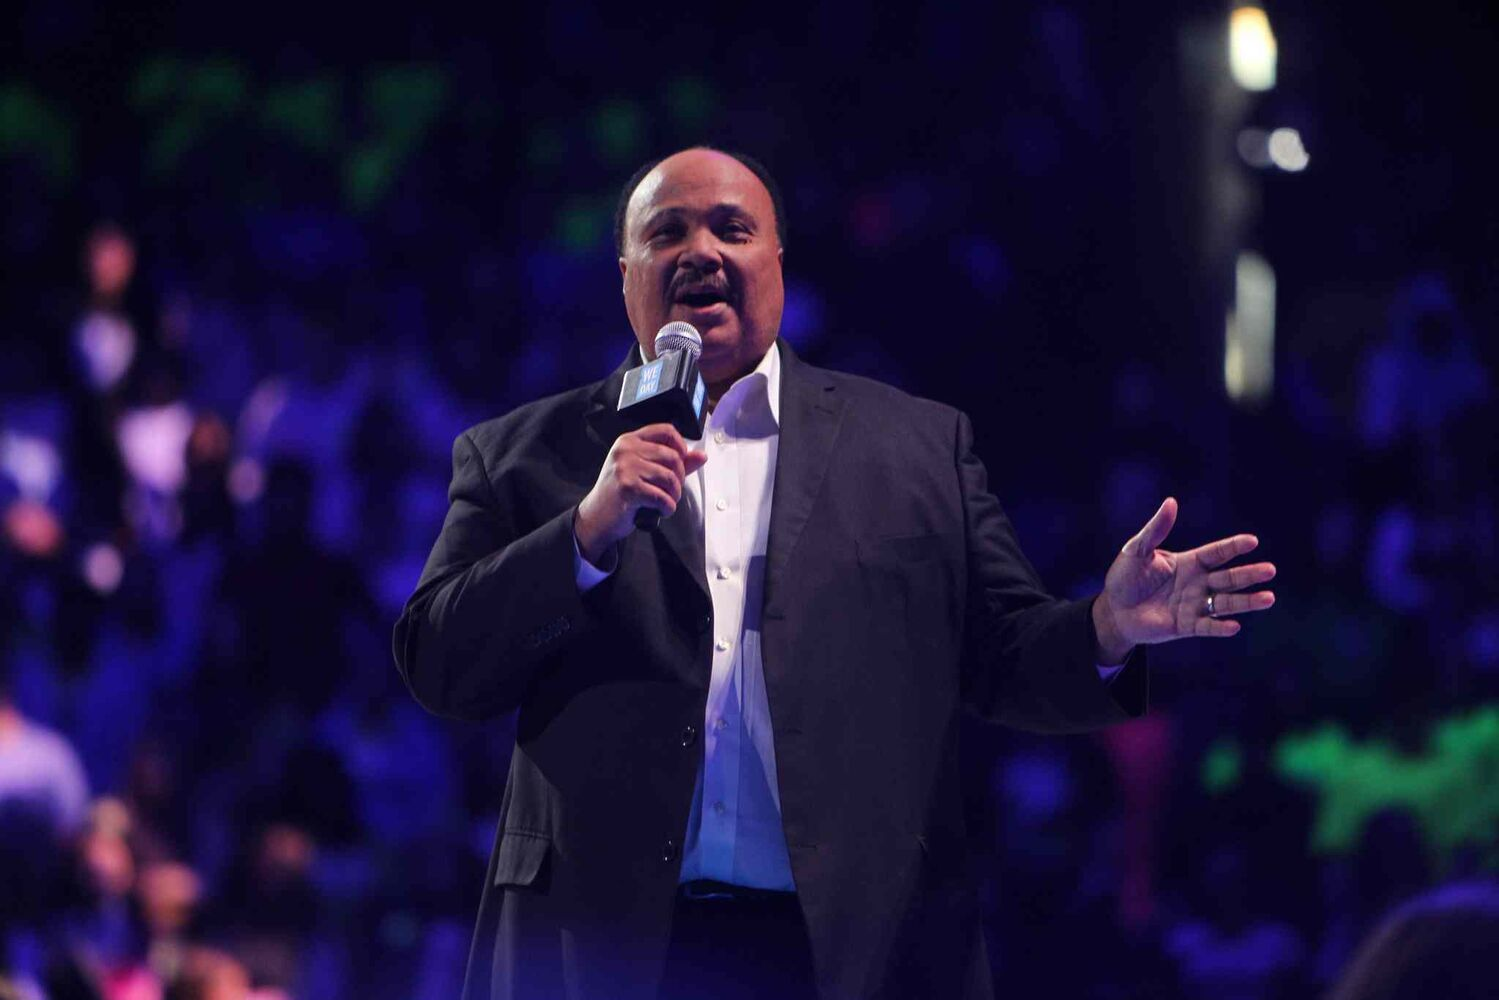 Martin Luther King III, human rights advocate and the eldest son of the late Dr. Martin Luther King Jr., speaks to the We Day crowd.